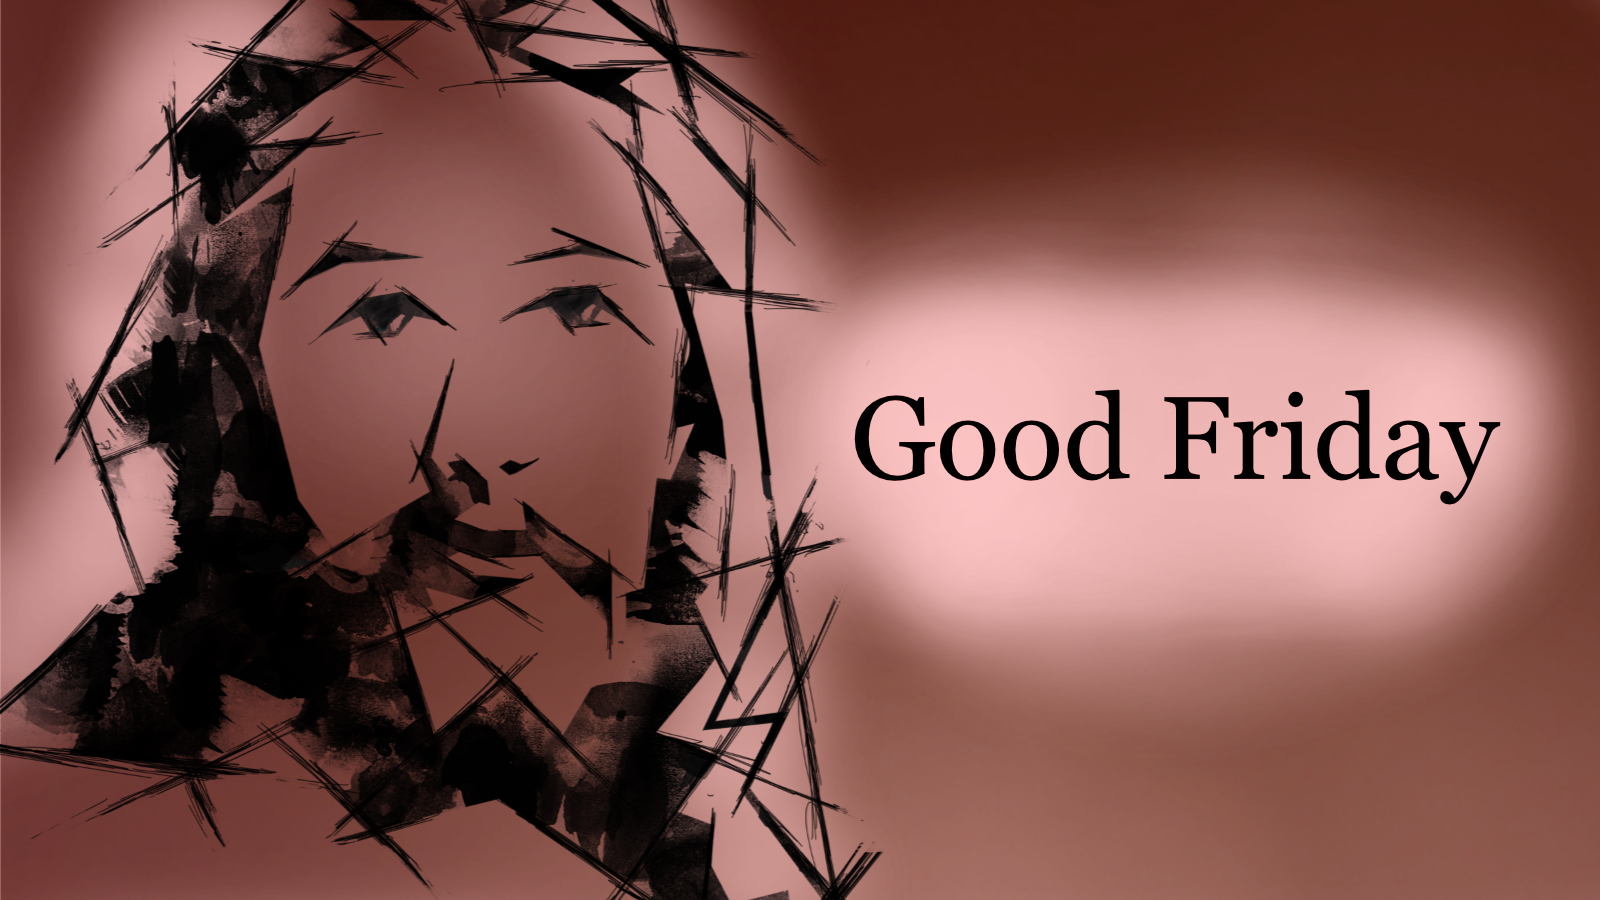 Good Friday Title.jpg